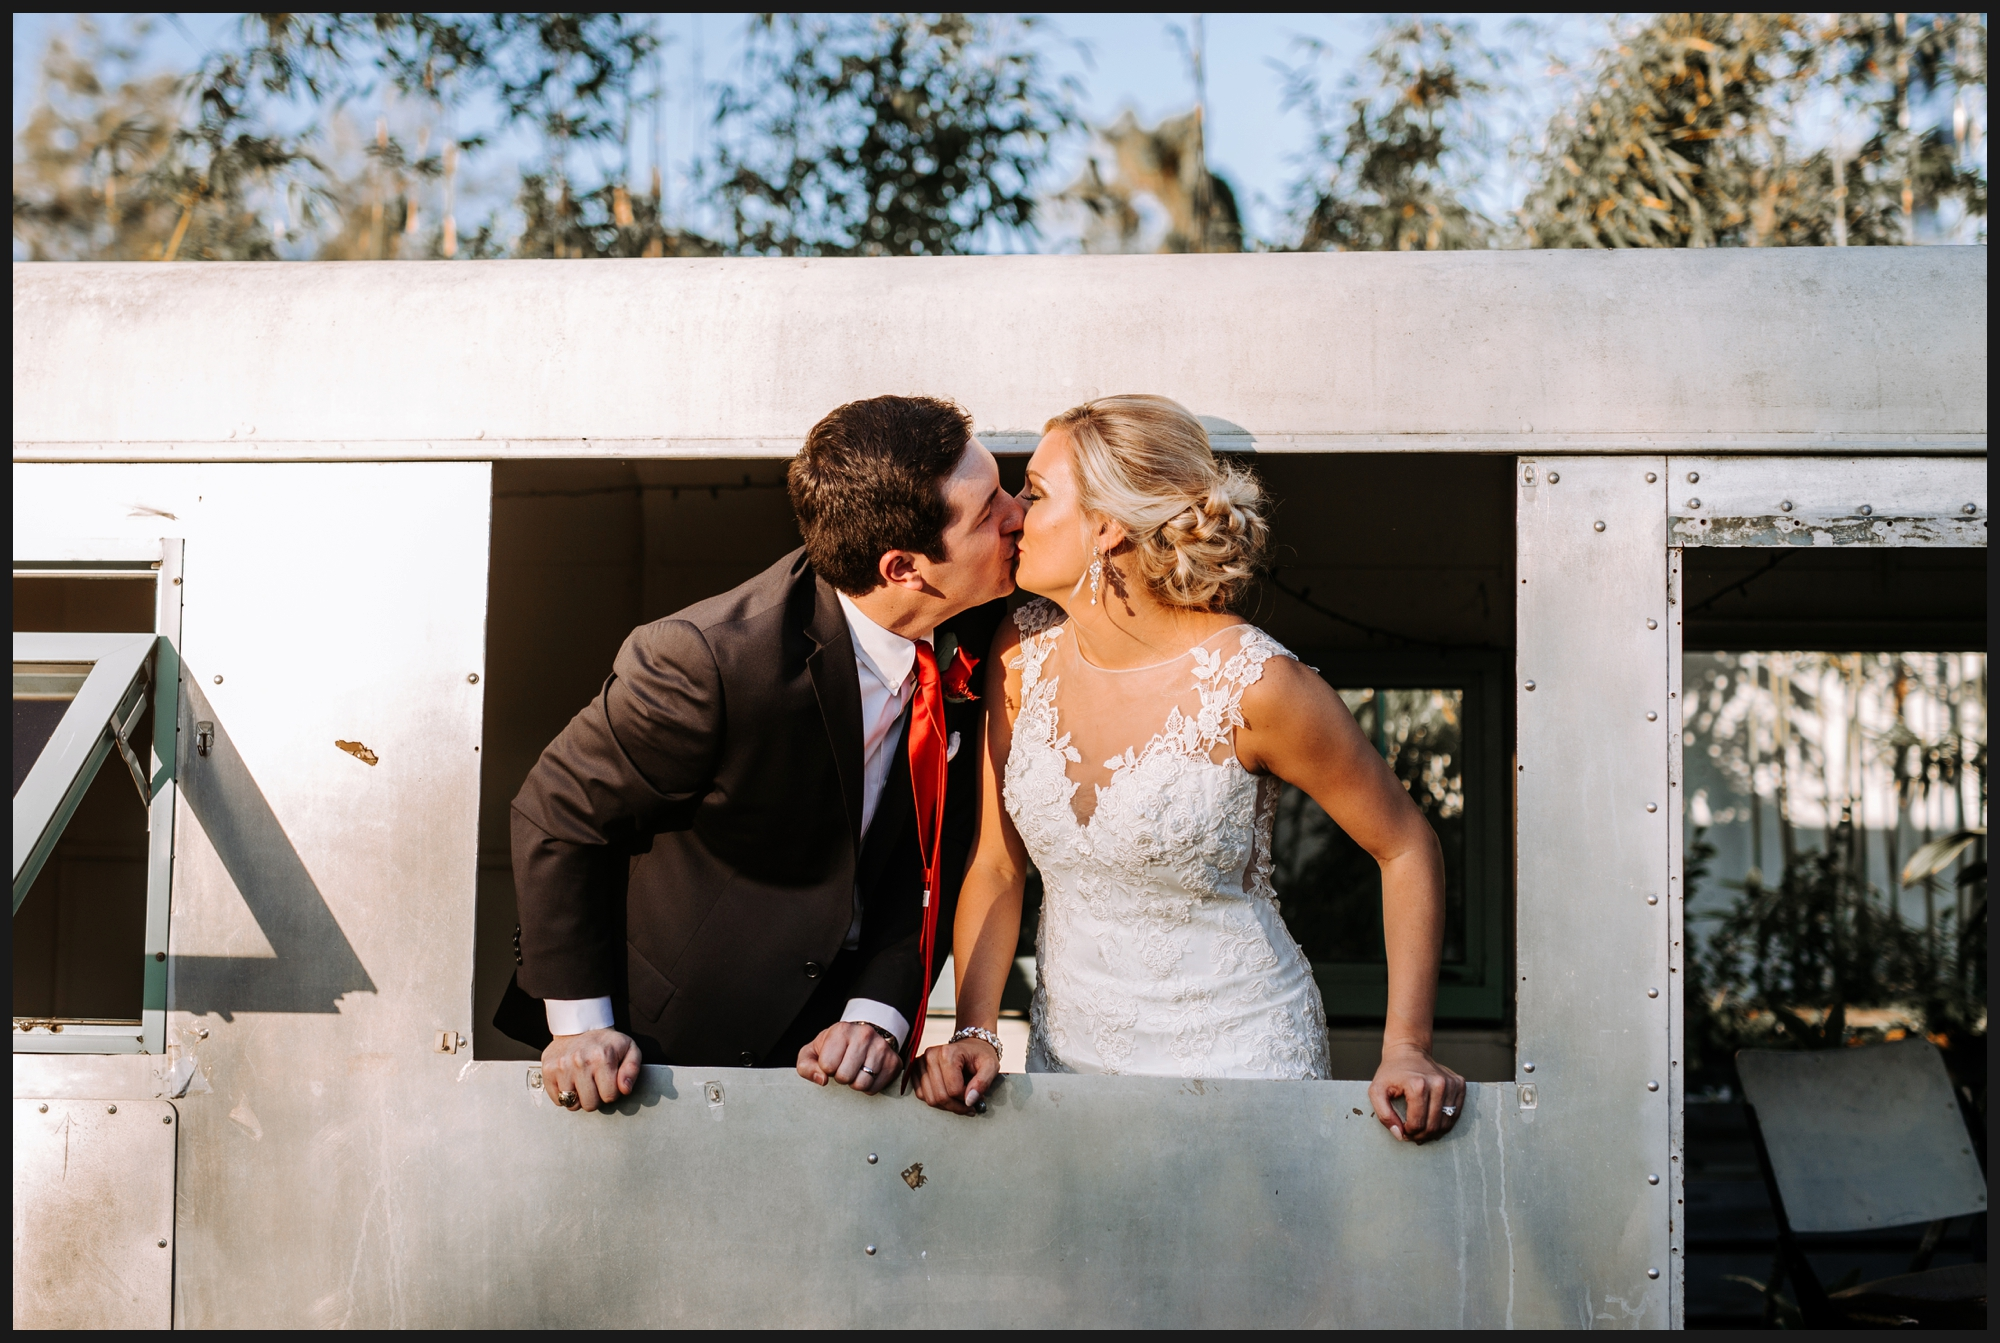 MitchandKatieOrlandoWeddingPhotographer_0096.jpg